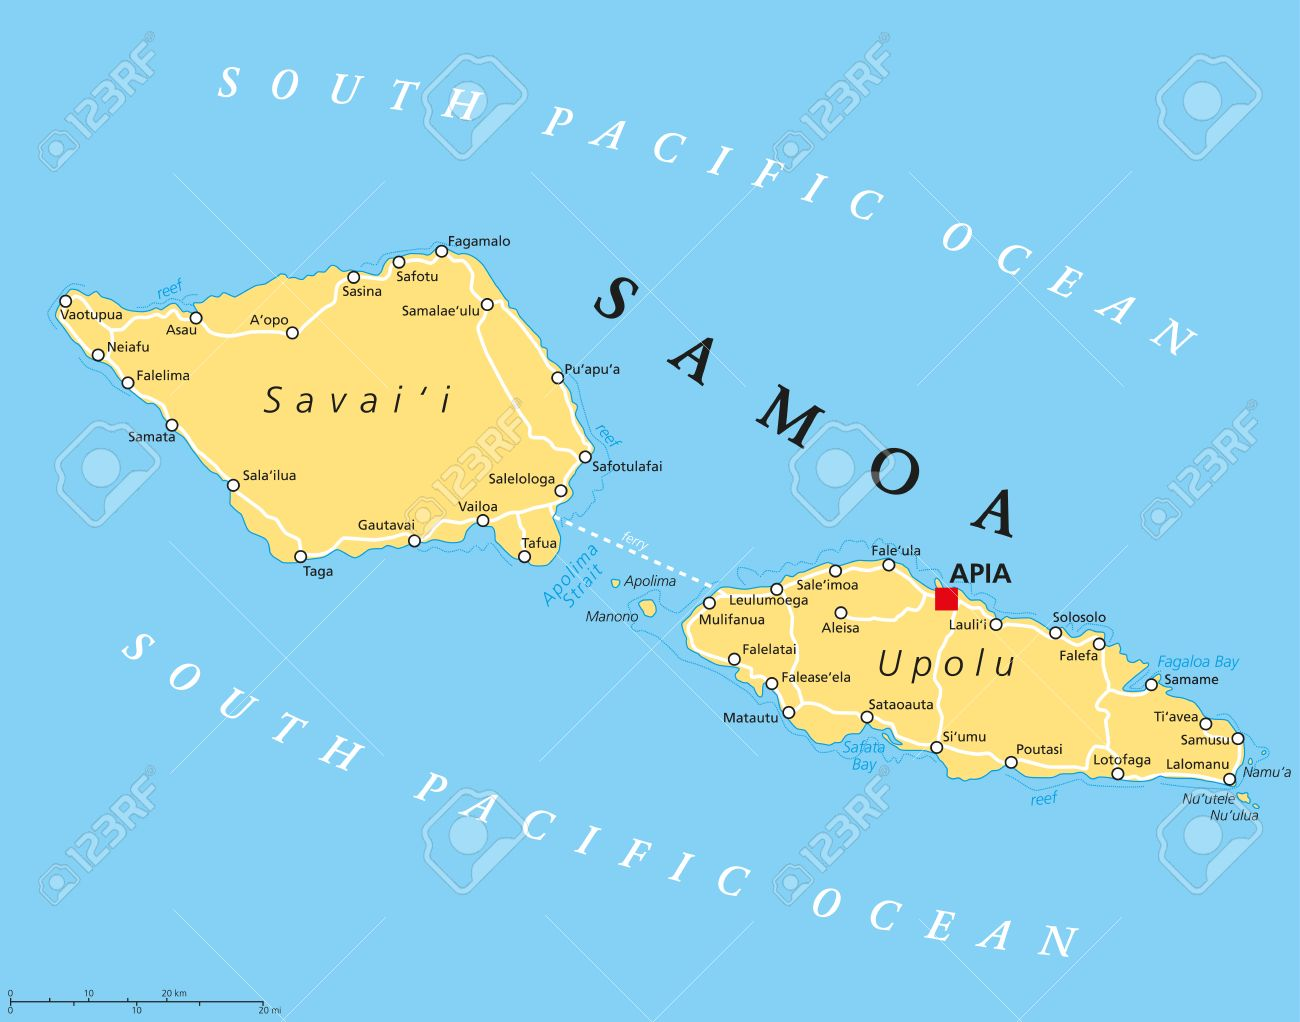 Samoa Political Map With Capital Apia And Important Places - Samoa map vector